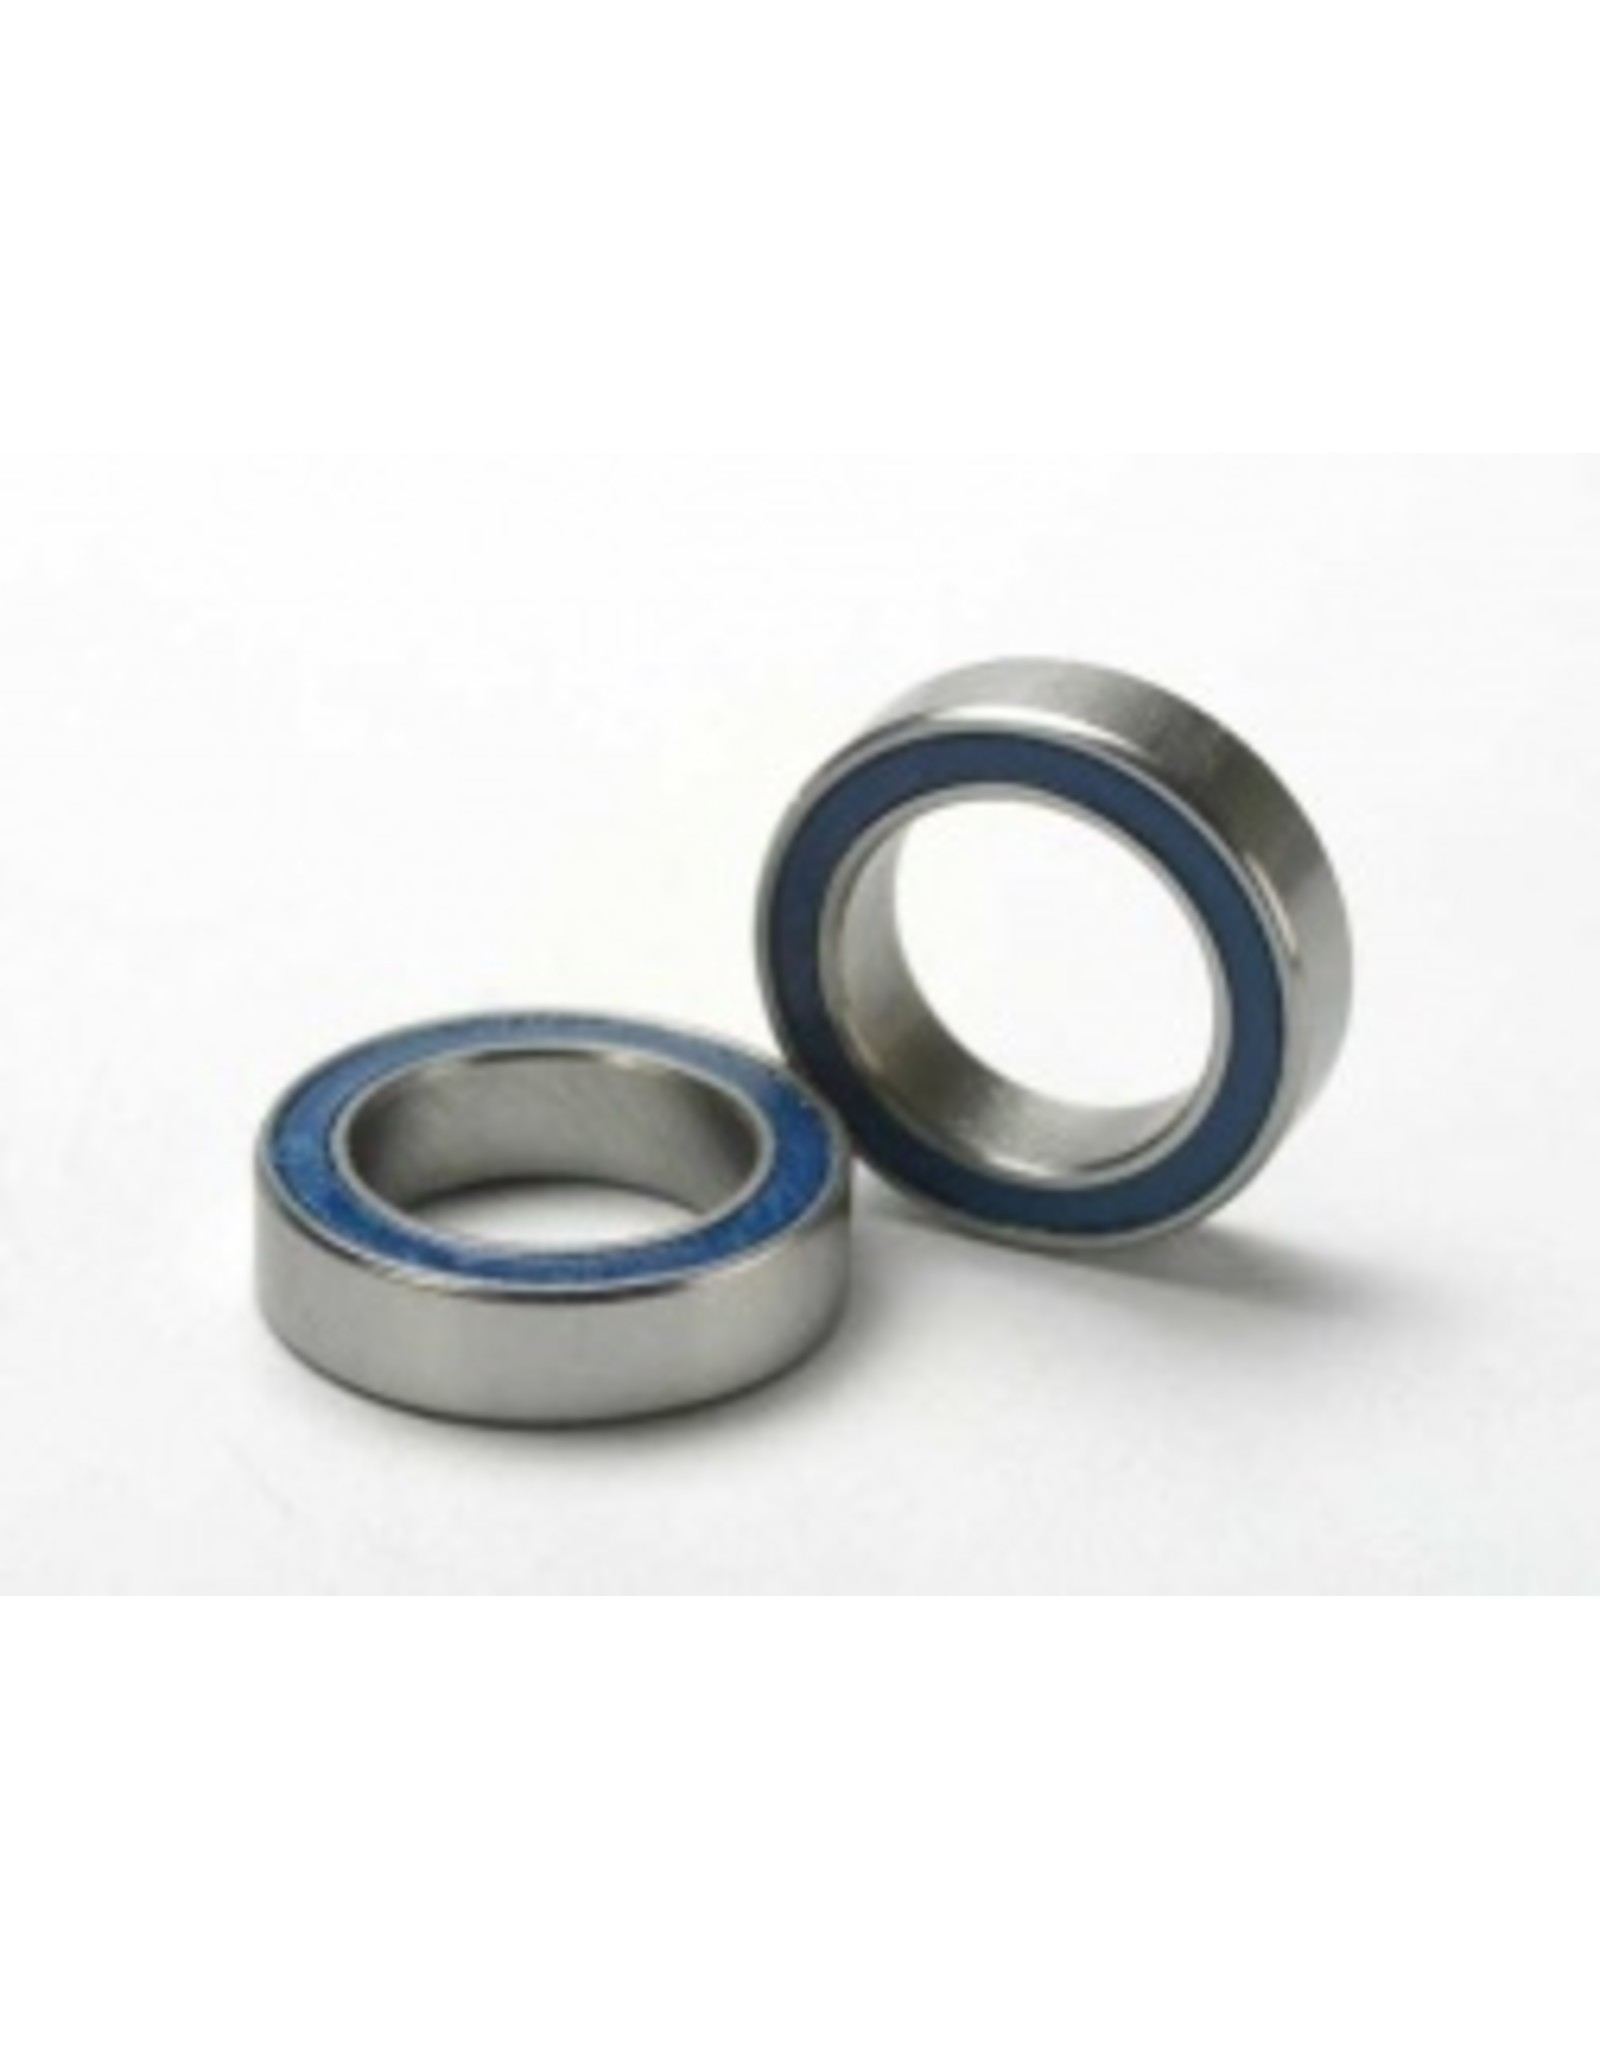 Traxxas Ball Bearings, Blue Rubber Sealed, 10 x 15 x 4mm (2)  (TRA5119)